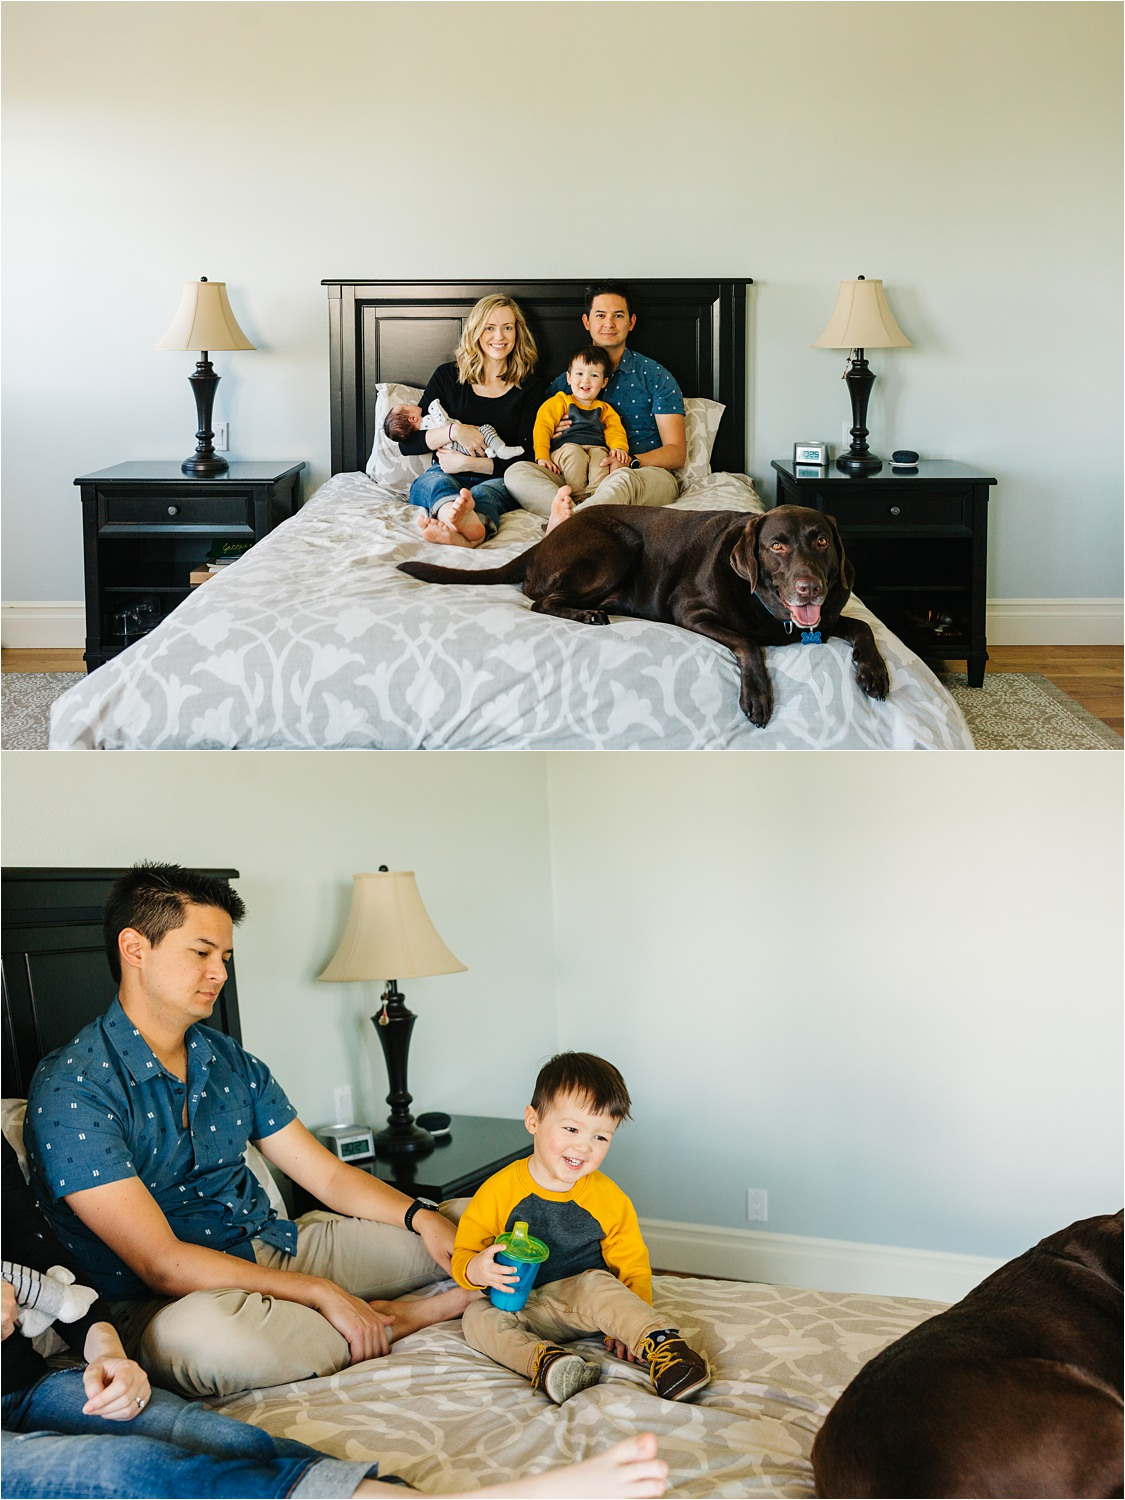 Family Photographer in Hermosa Beach - https://brittneyhannonphotography.com